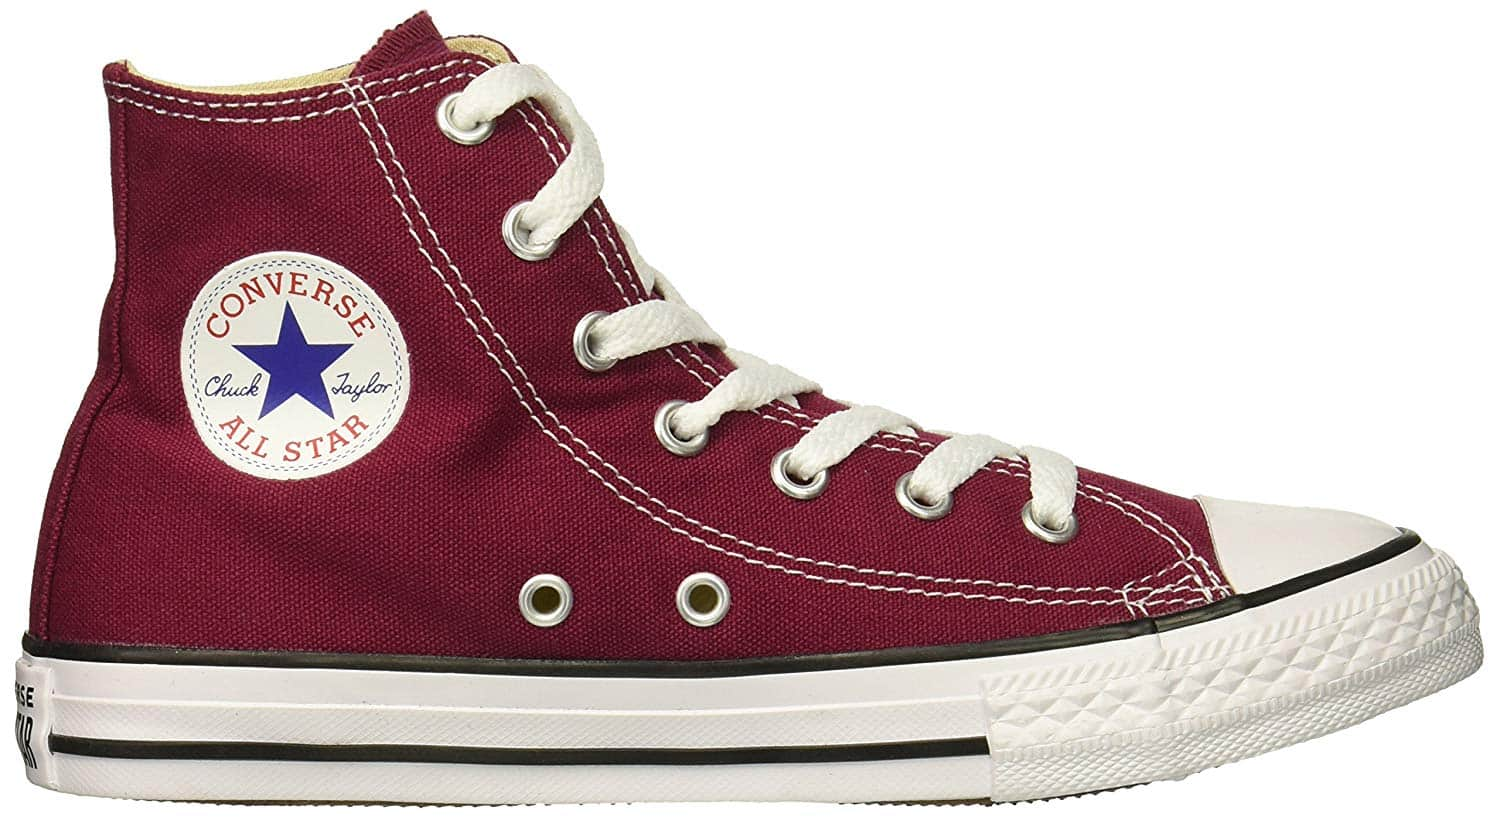 7313ac19f94889 Converse Kids  Chuck Taylor All Star 2018 Seasonal High Top Sneaker  Little  Kid (4-8 Years)